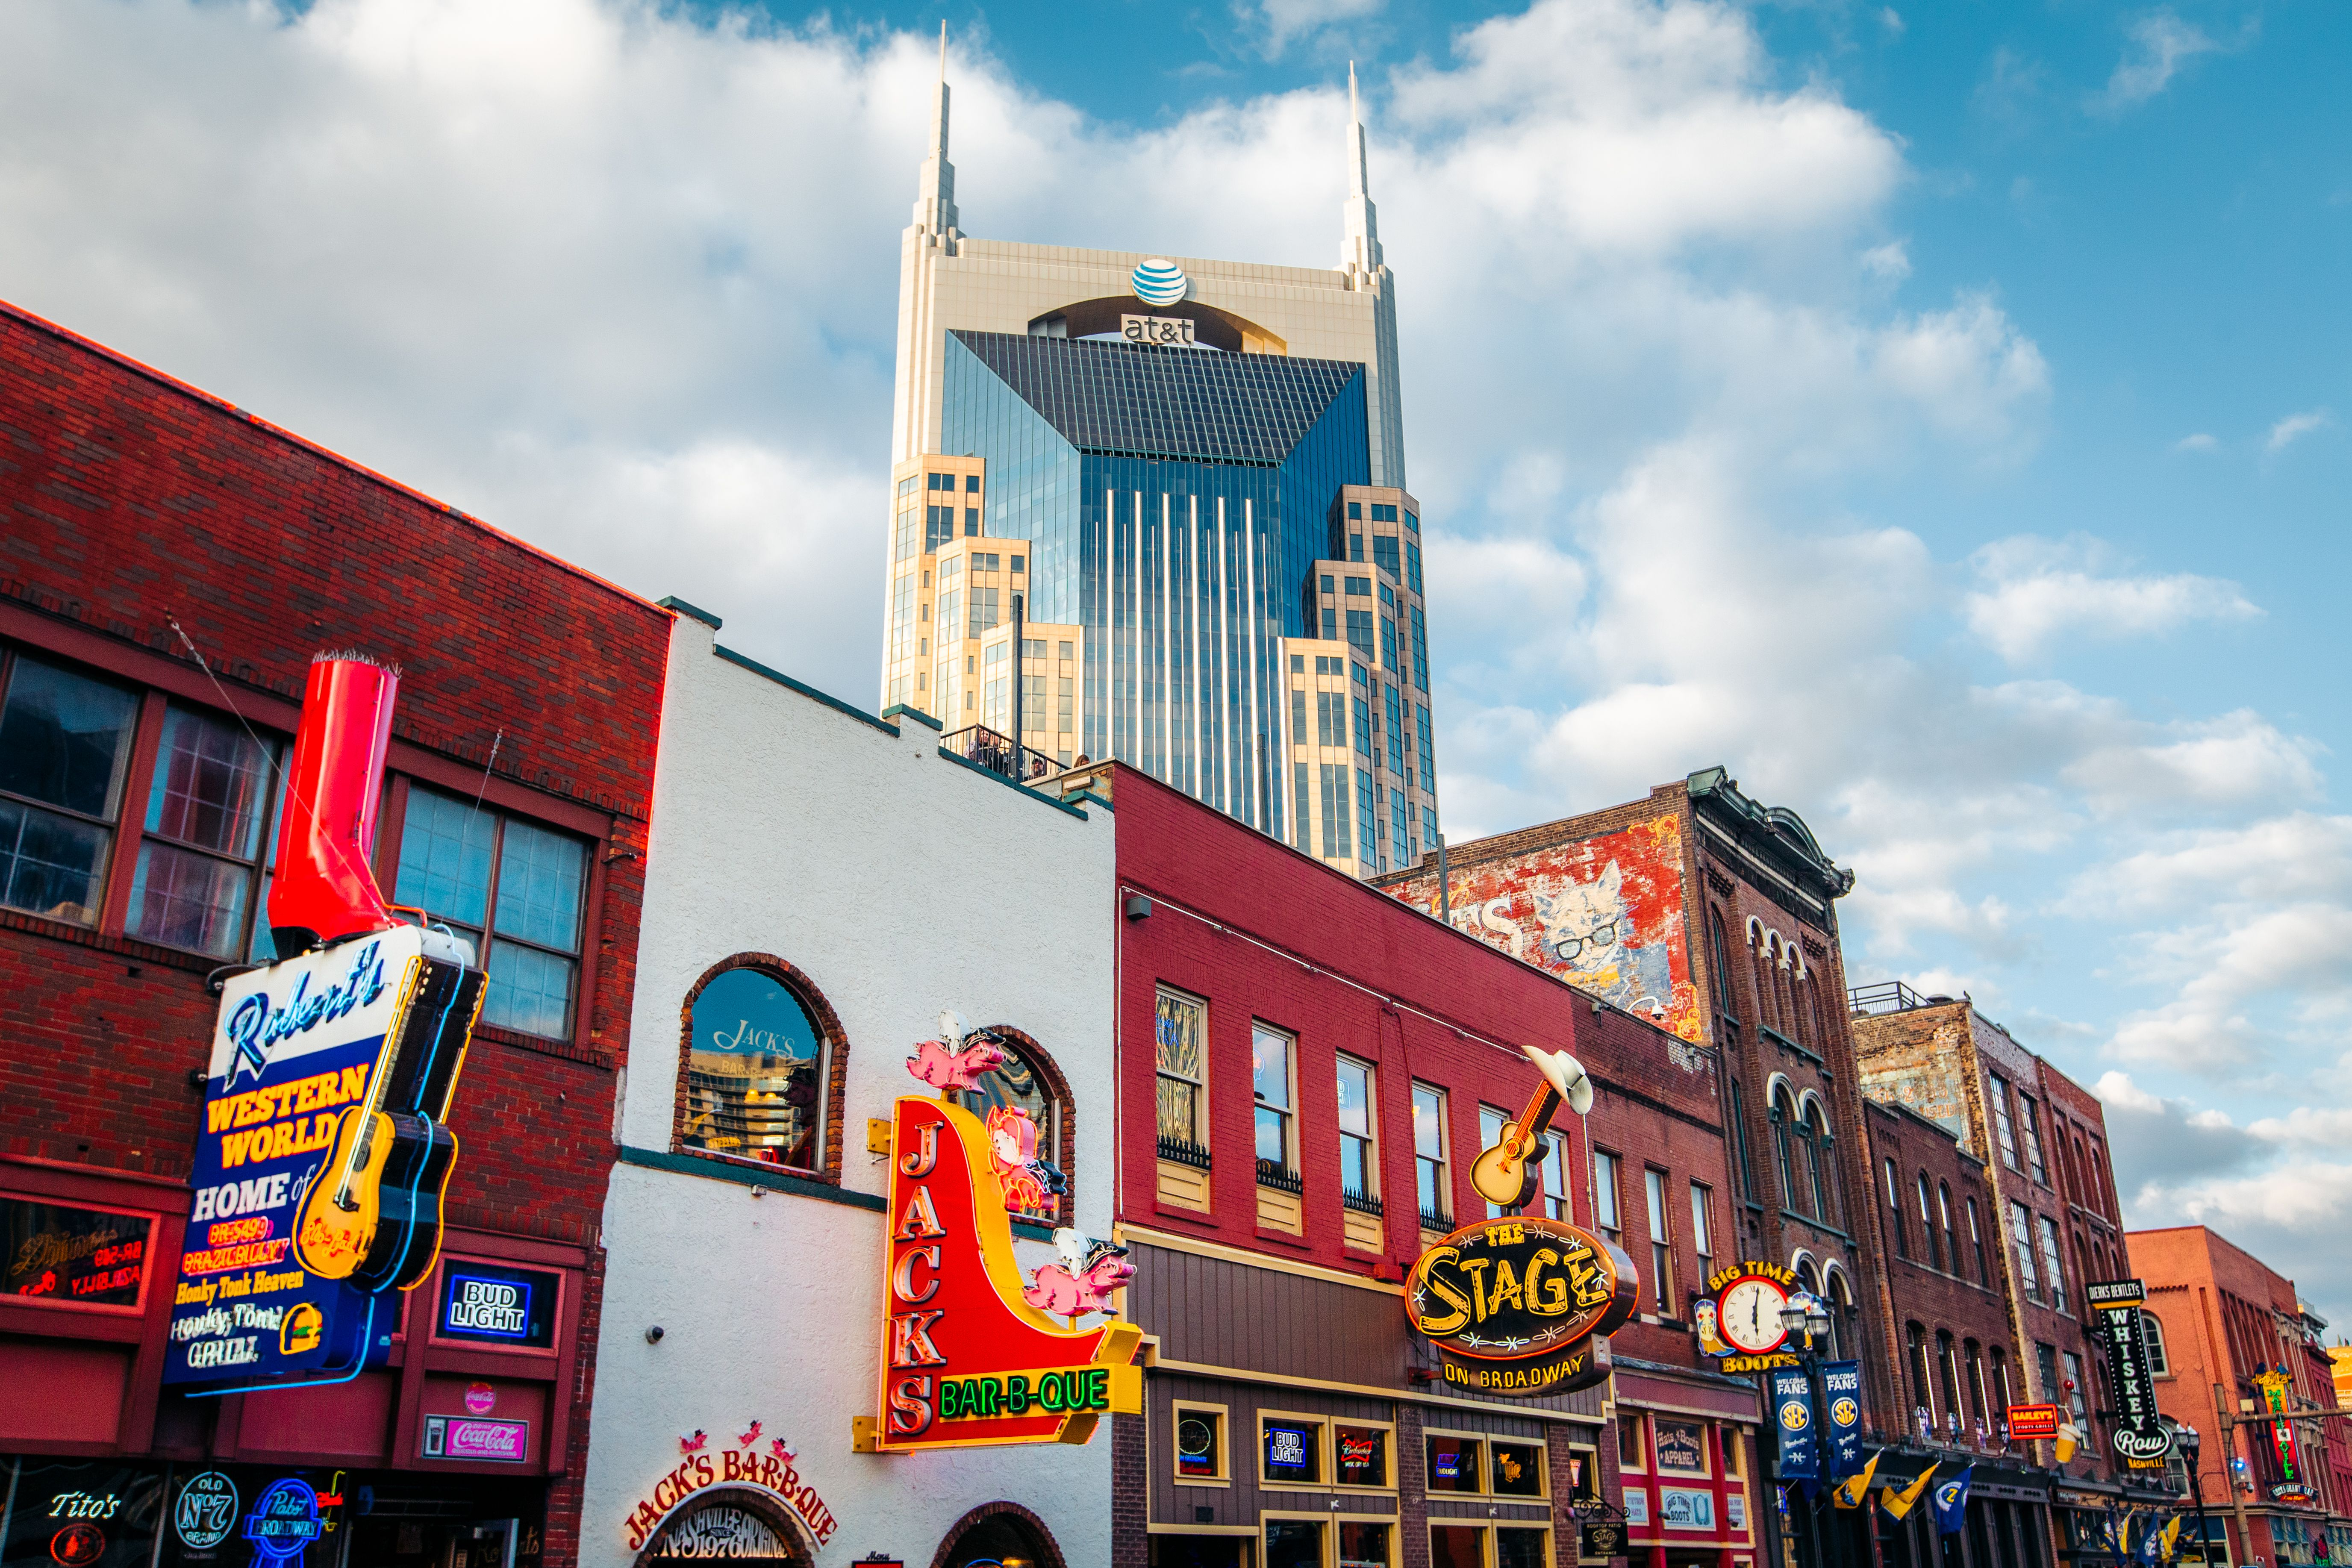 Make a trip to Nashville your New Year's resolution. We